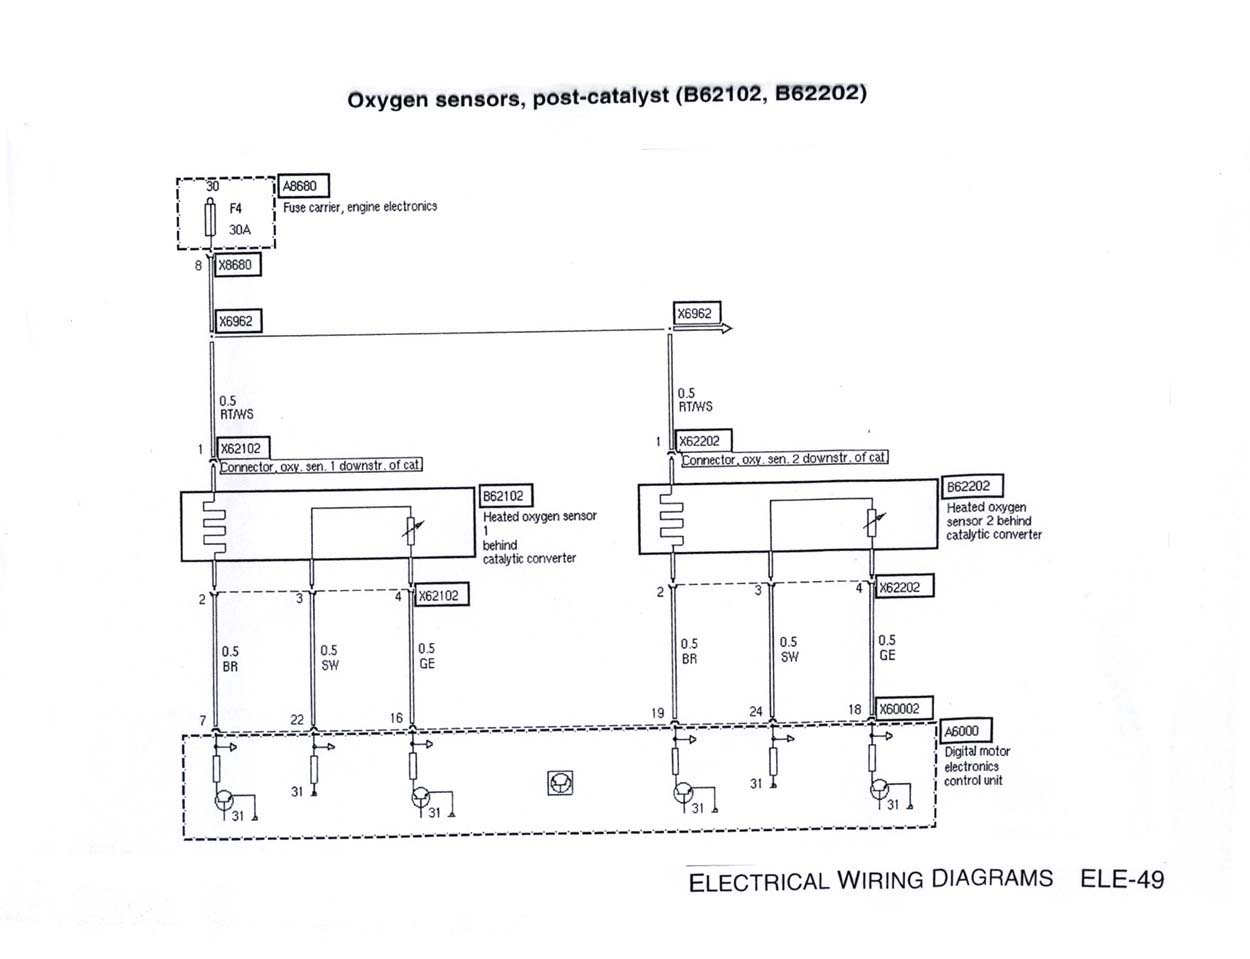 bmw e36 oxygen sensor wiring diagram bmw image e46 m3 o2 sensor wiring diagram wiring diagrams on bmw e36 oxygen sensor wiring diagram